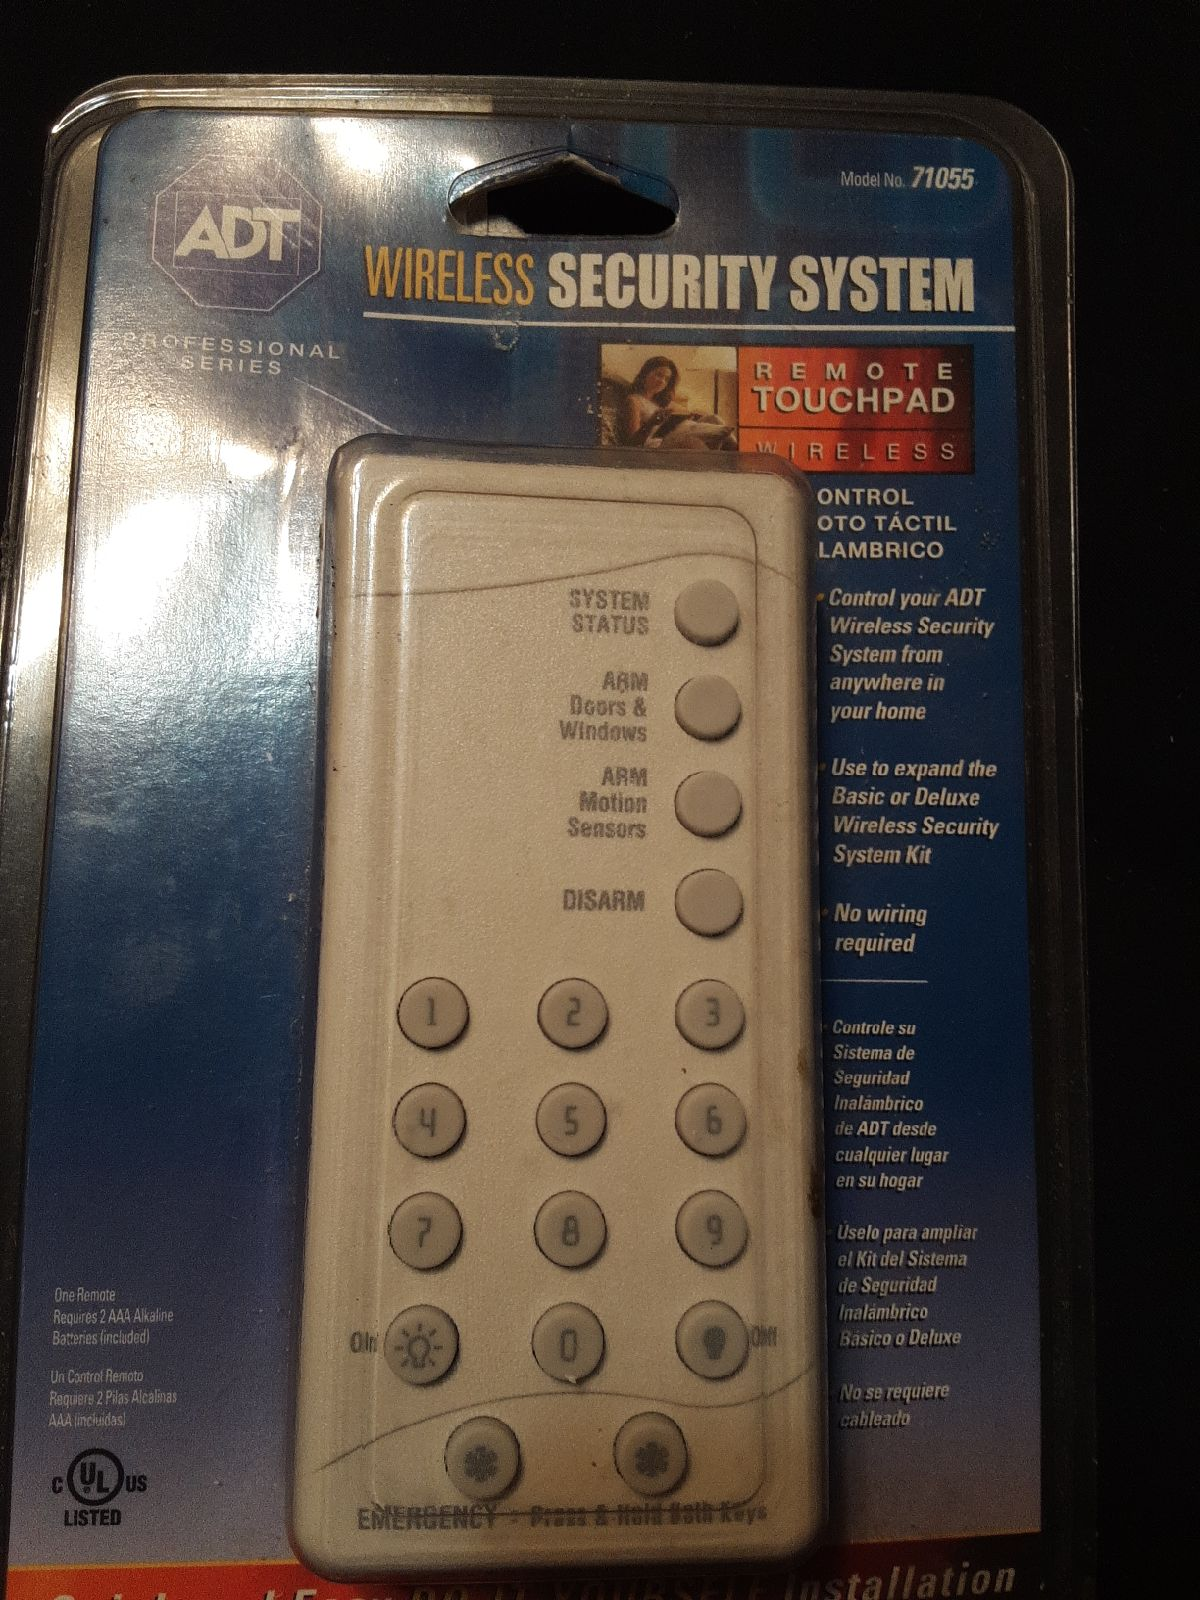 ADT WIRELESS REMOTE TOUCHPAD